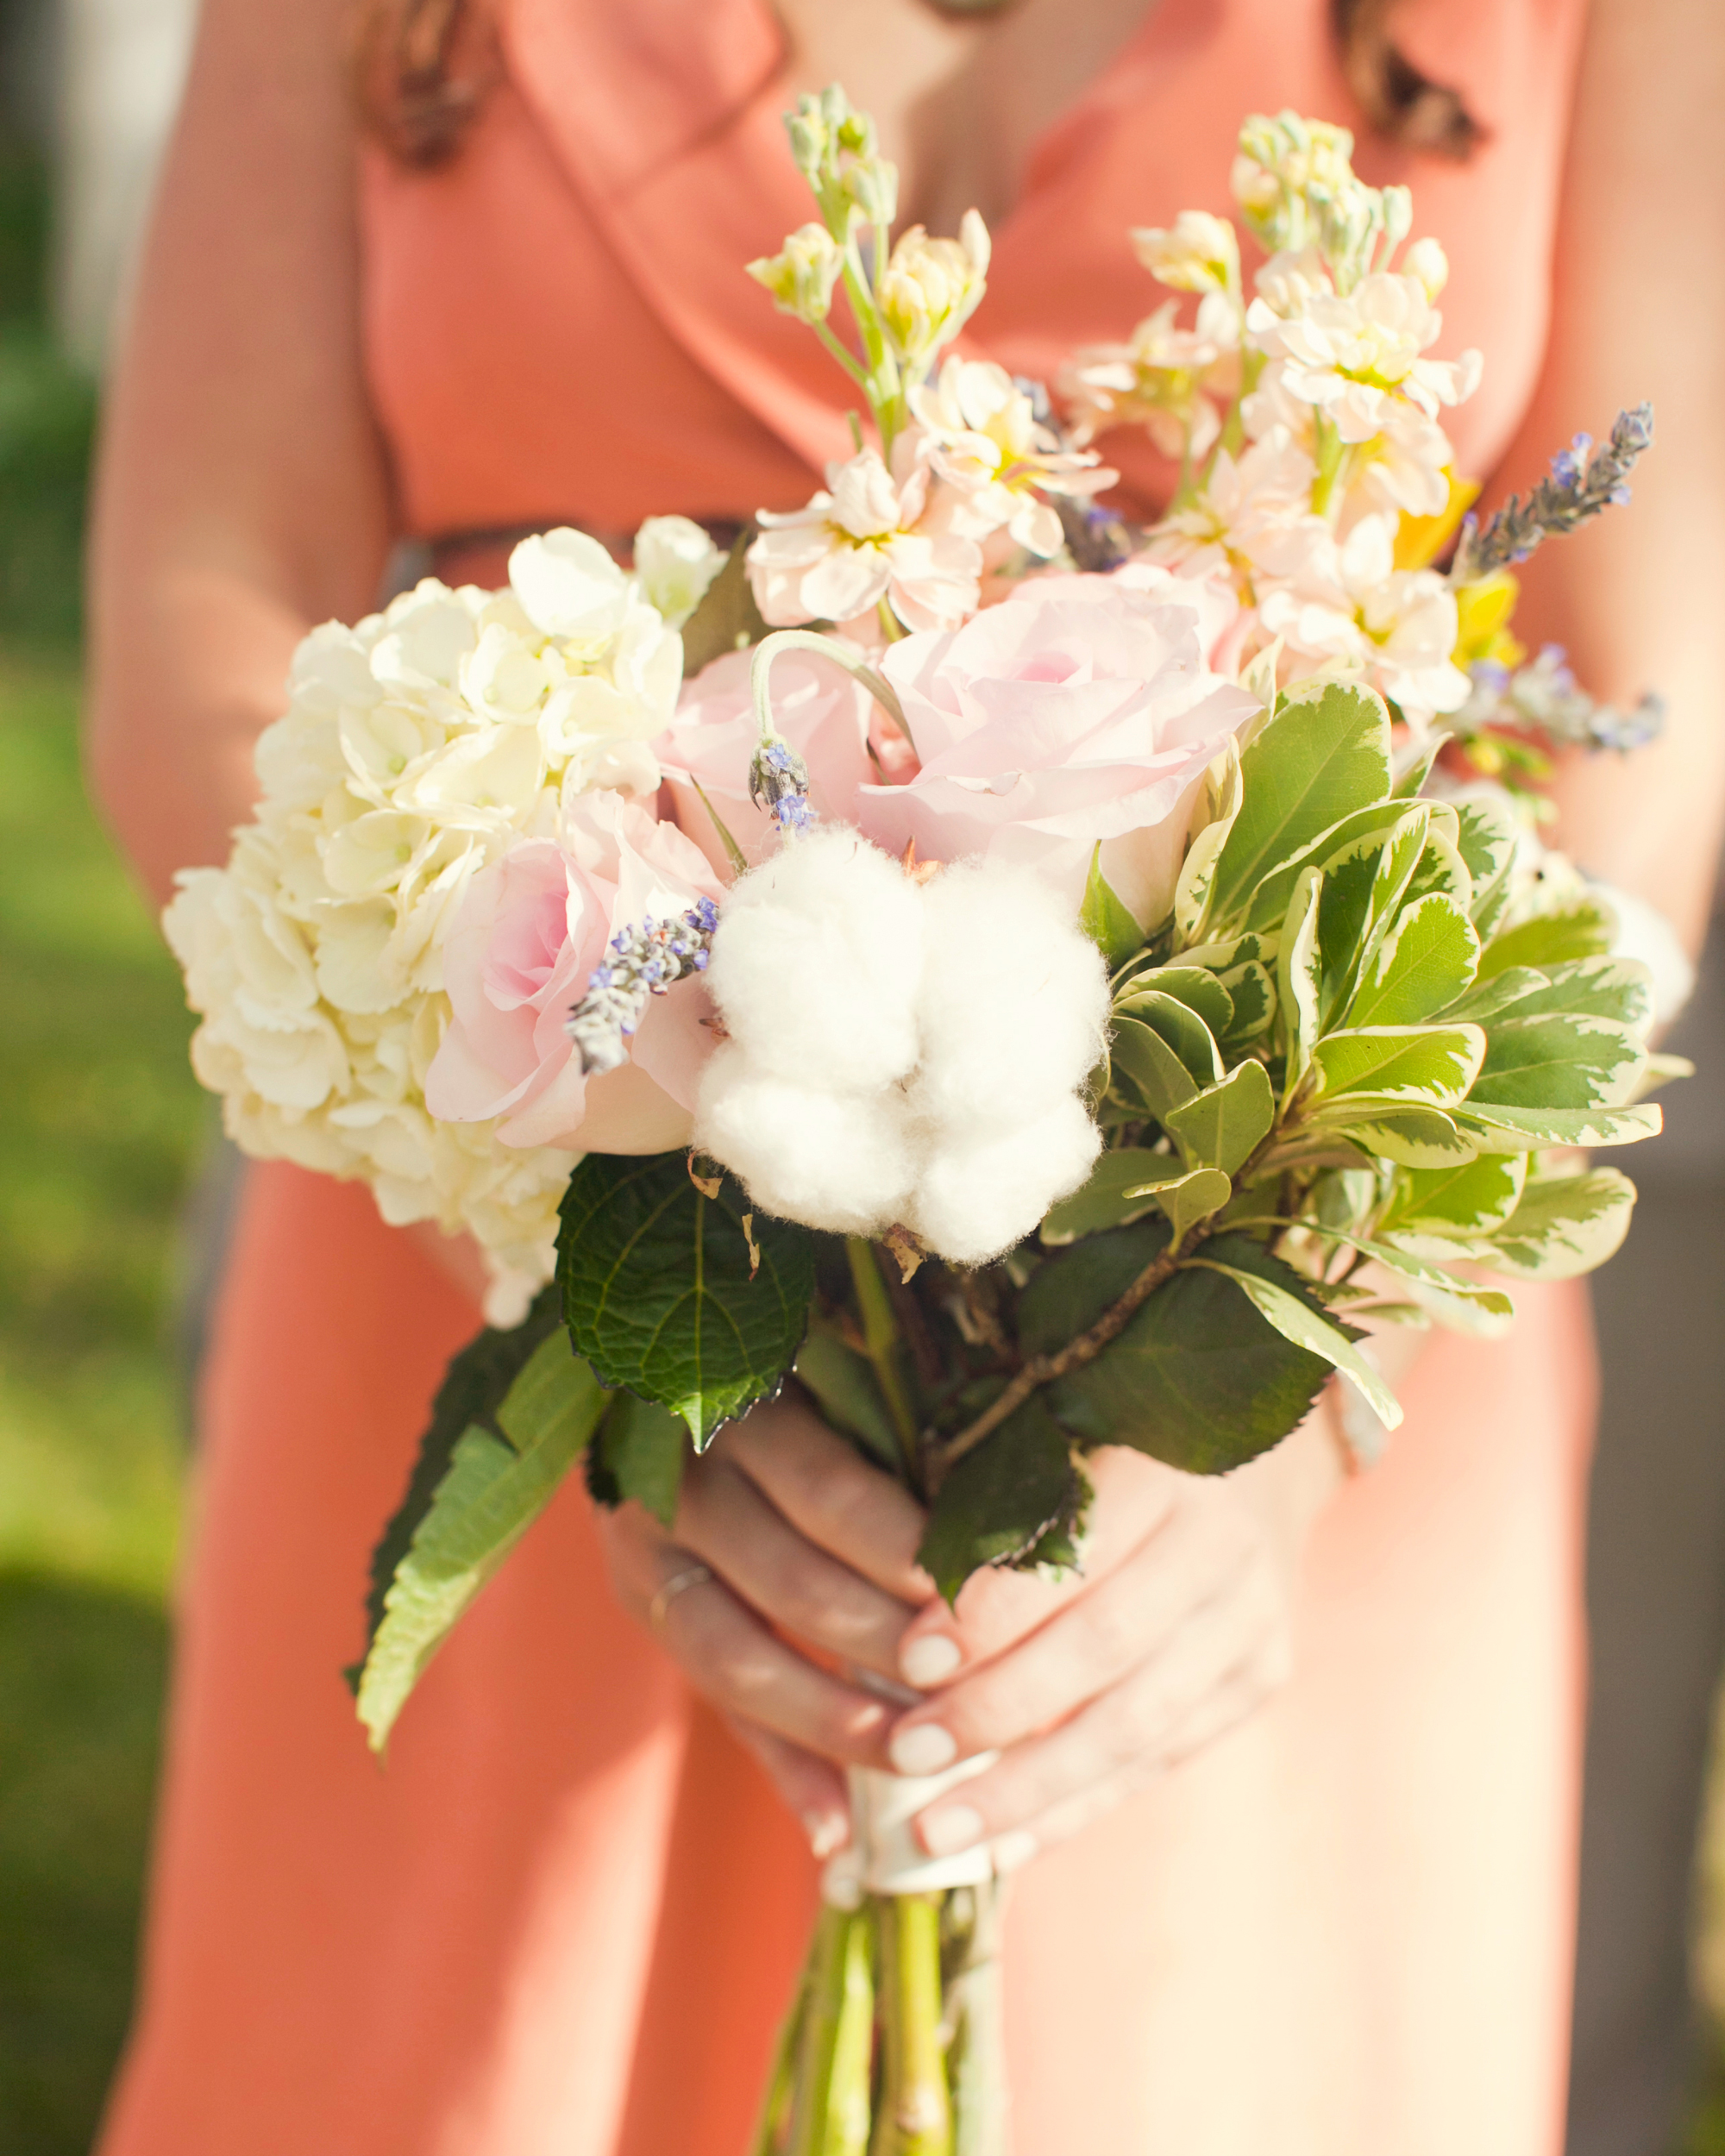 The Bridesmaids' Bouquets